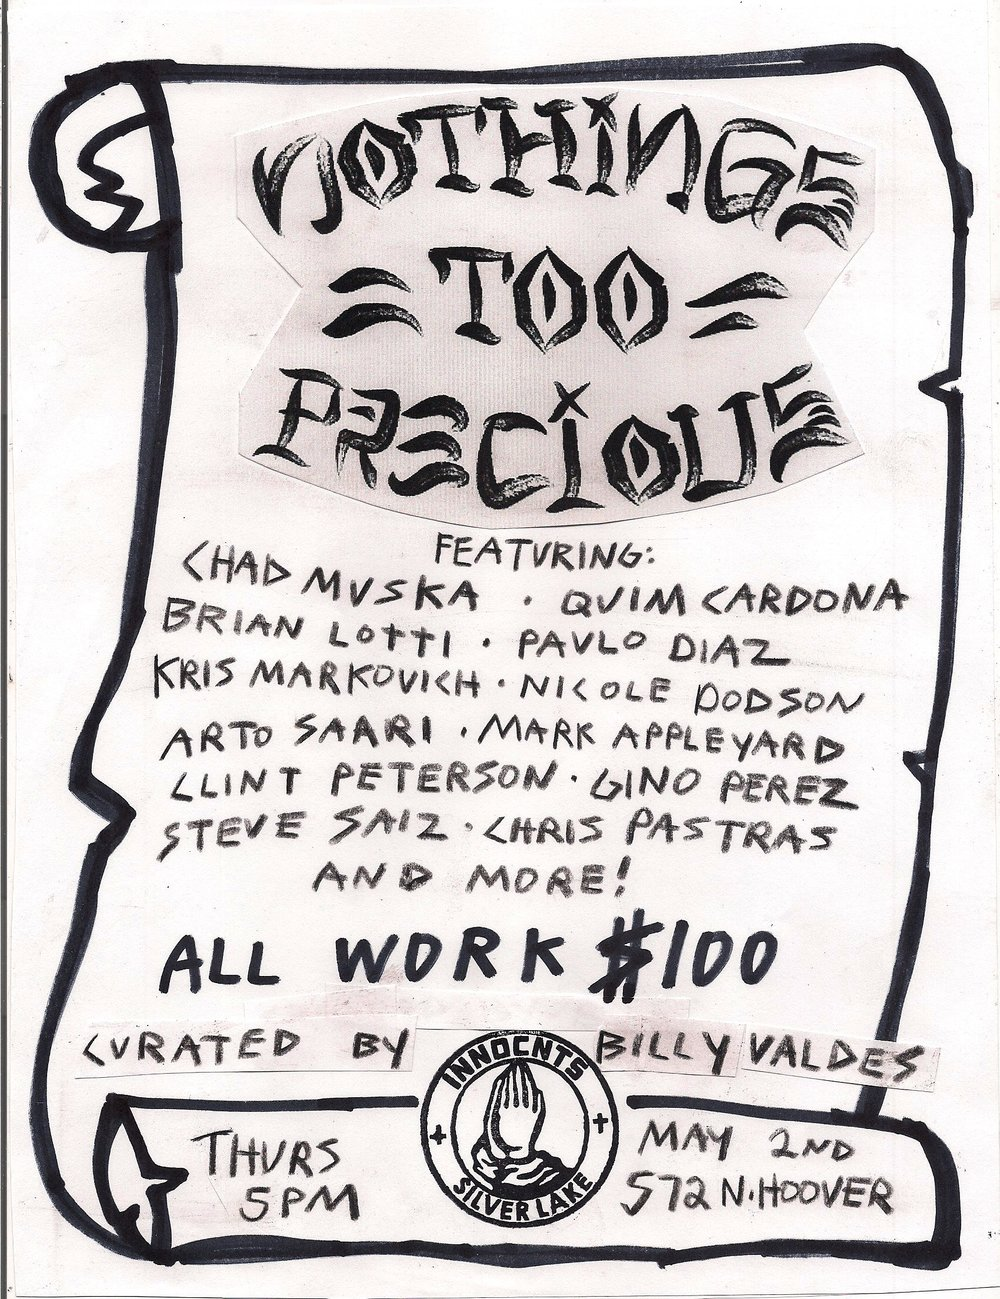 GROUP SHOW - NOTHING'S TOO PRECIOUS 1